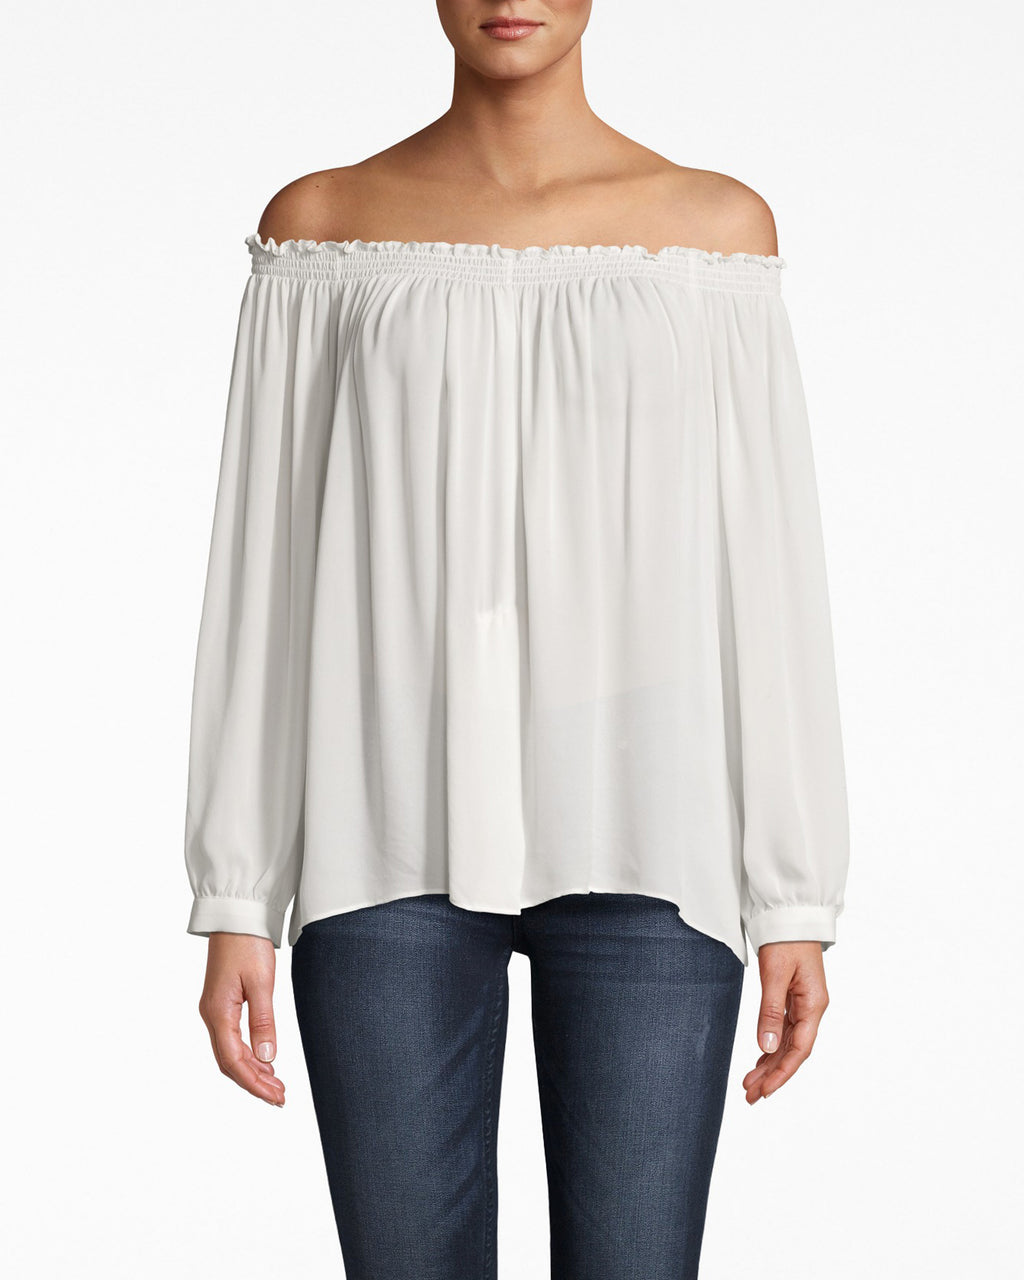 BE10194 - SILK ROCKY SMOCKED OFF THE SHOULDER TOP - tops - blouses - The soulmate for jeans. This off the shoulder top features smocking at the neckline and a flowy body, and the wrists are structured cuffs. Tie the hem to make things a little more casual.